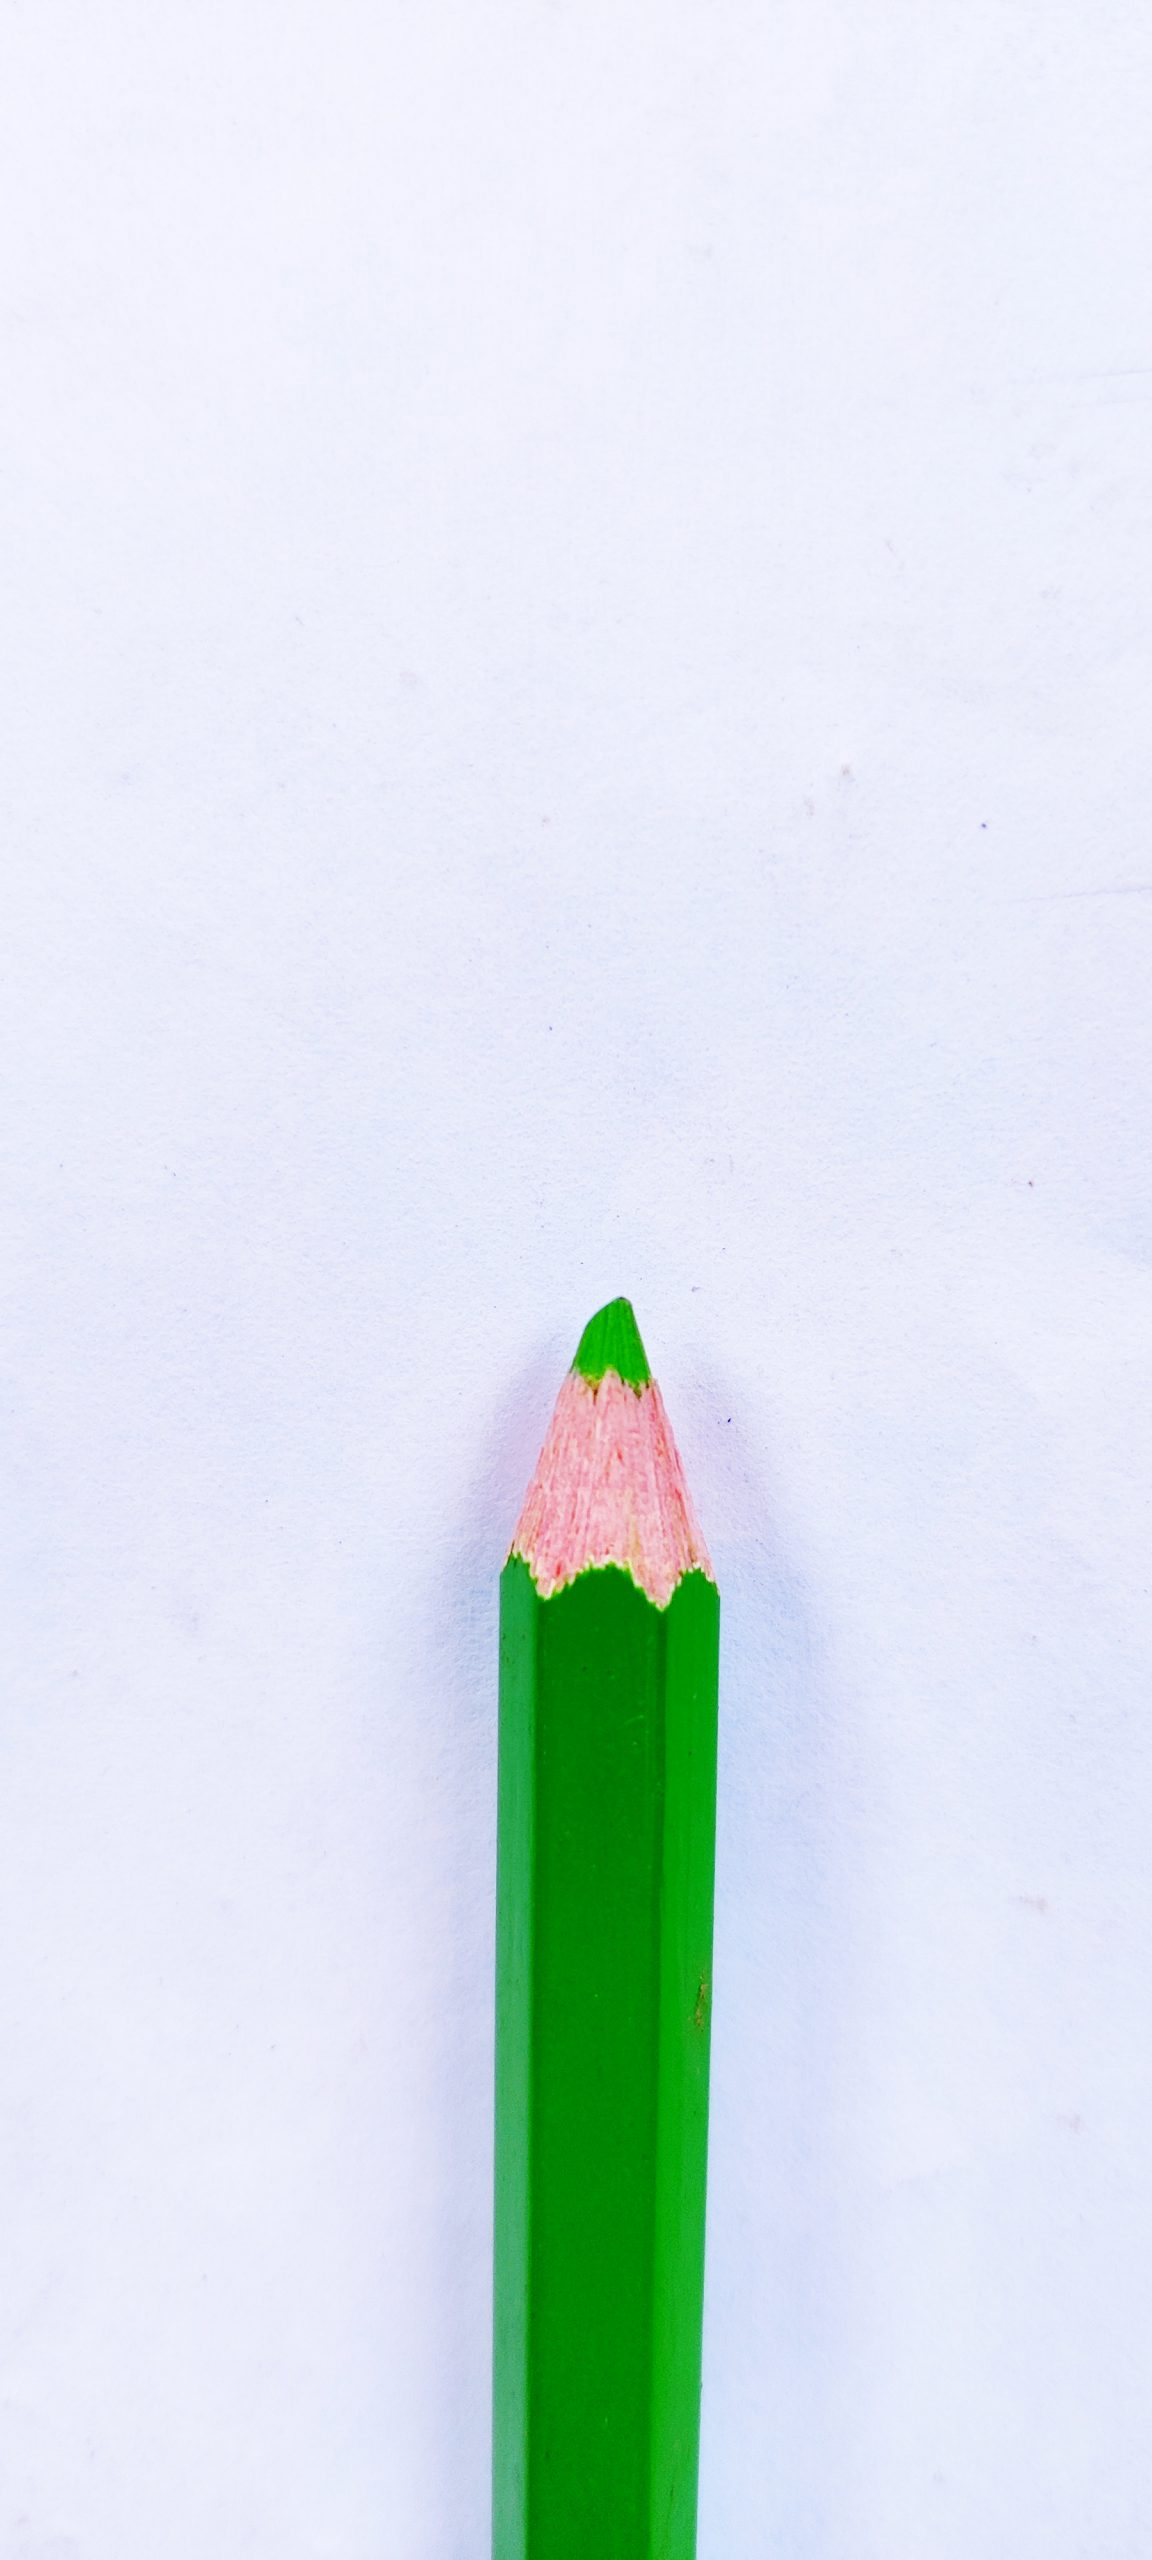 A green color pencil